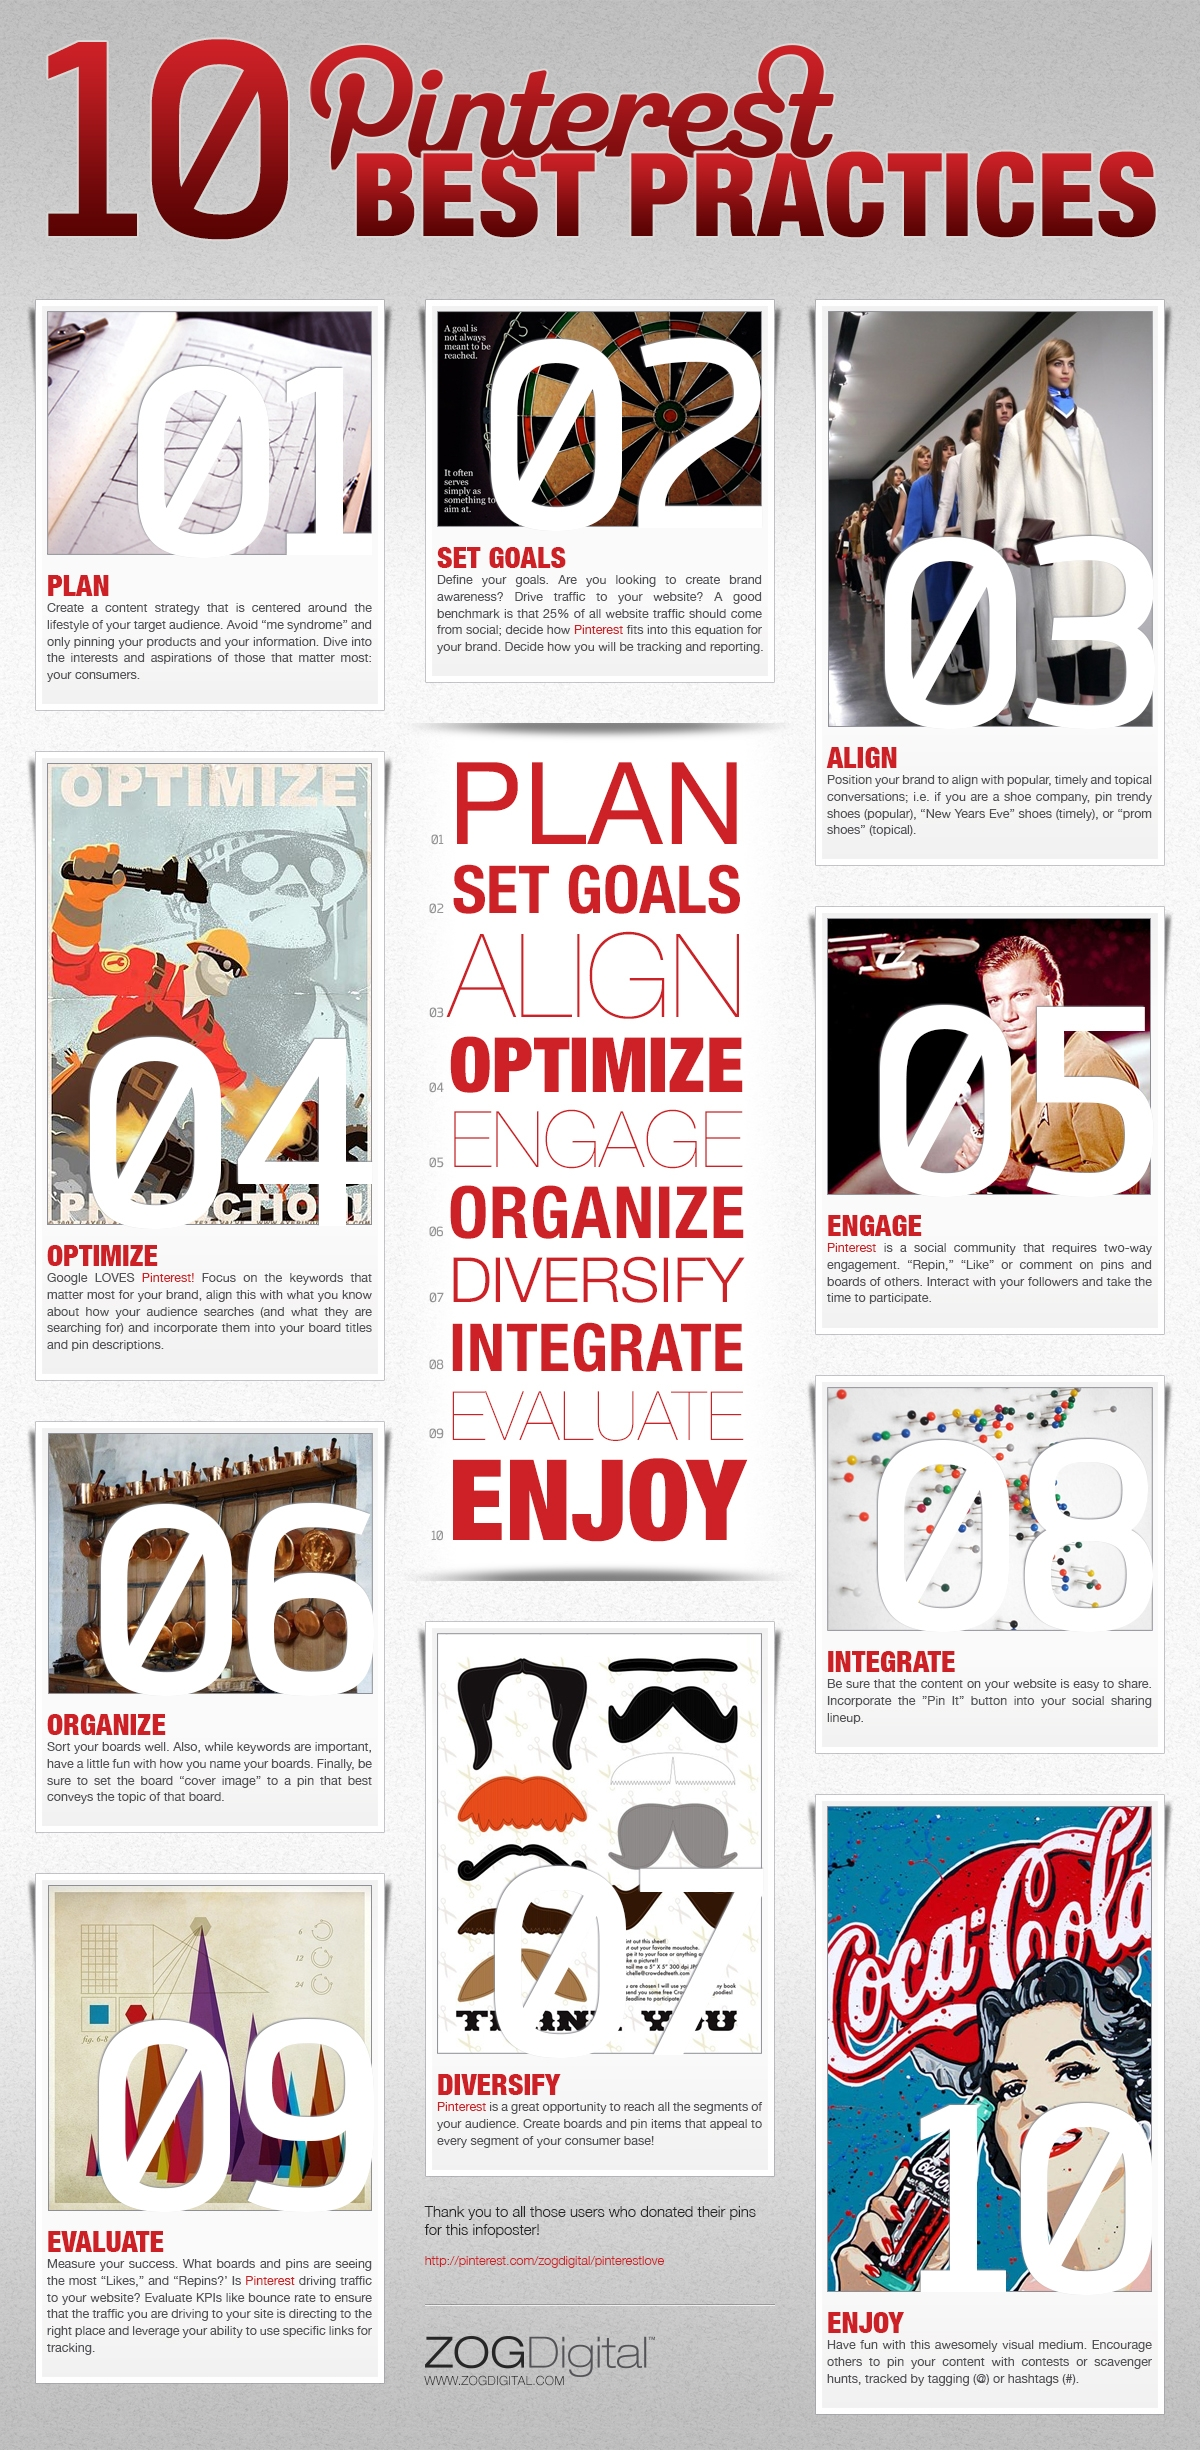 10 Pinterest Best Practices